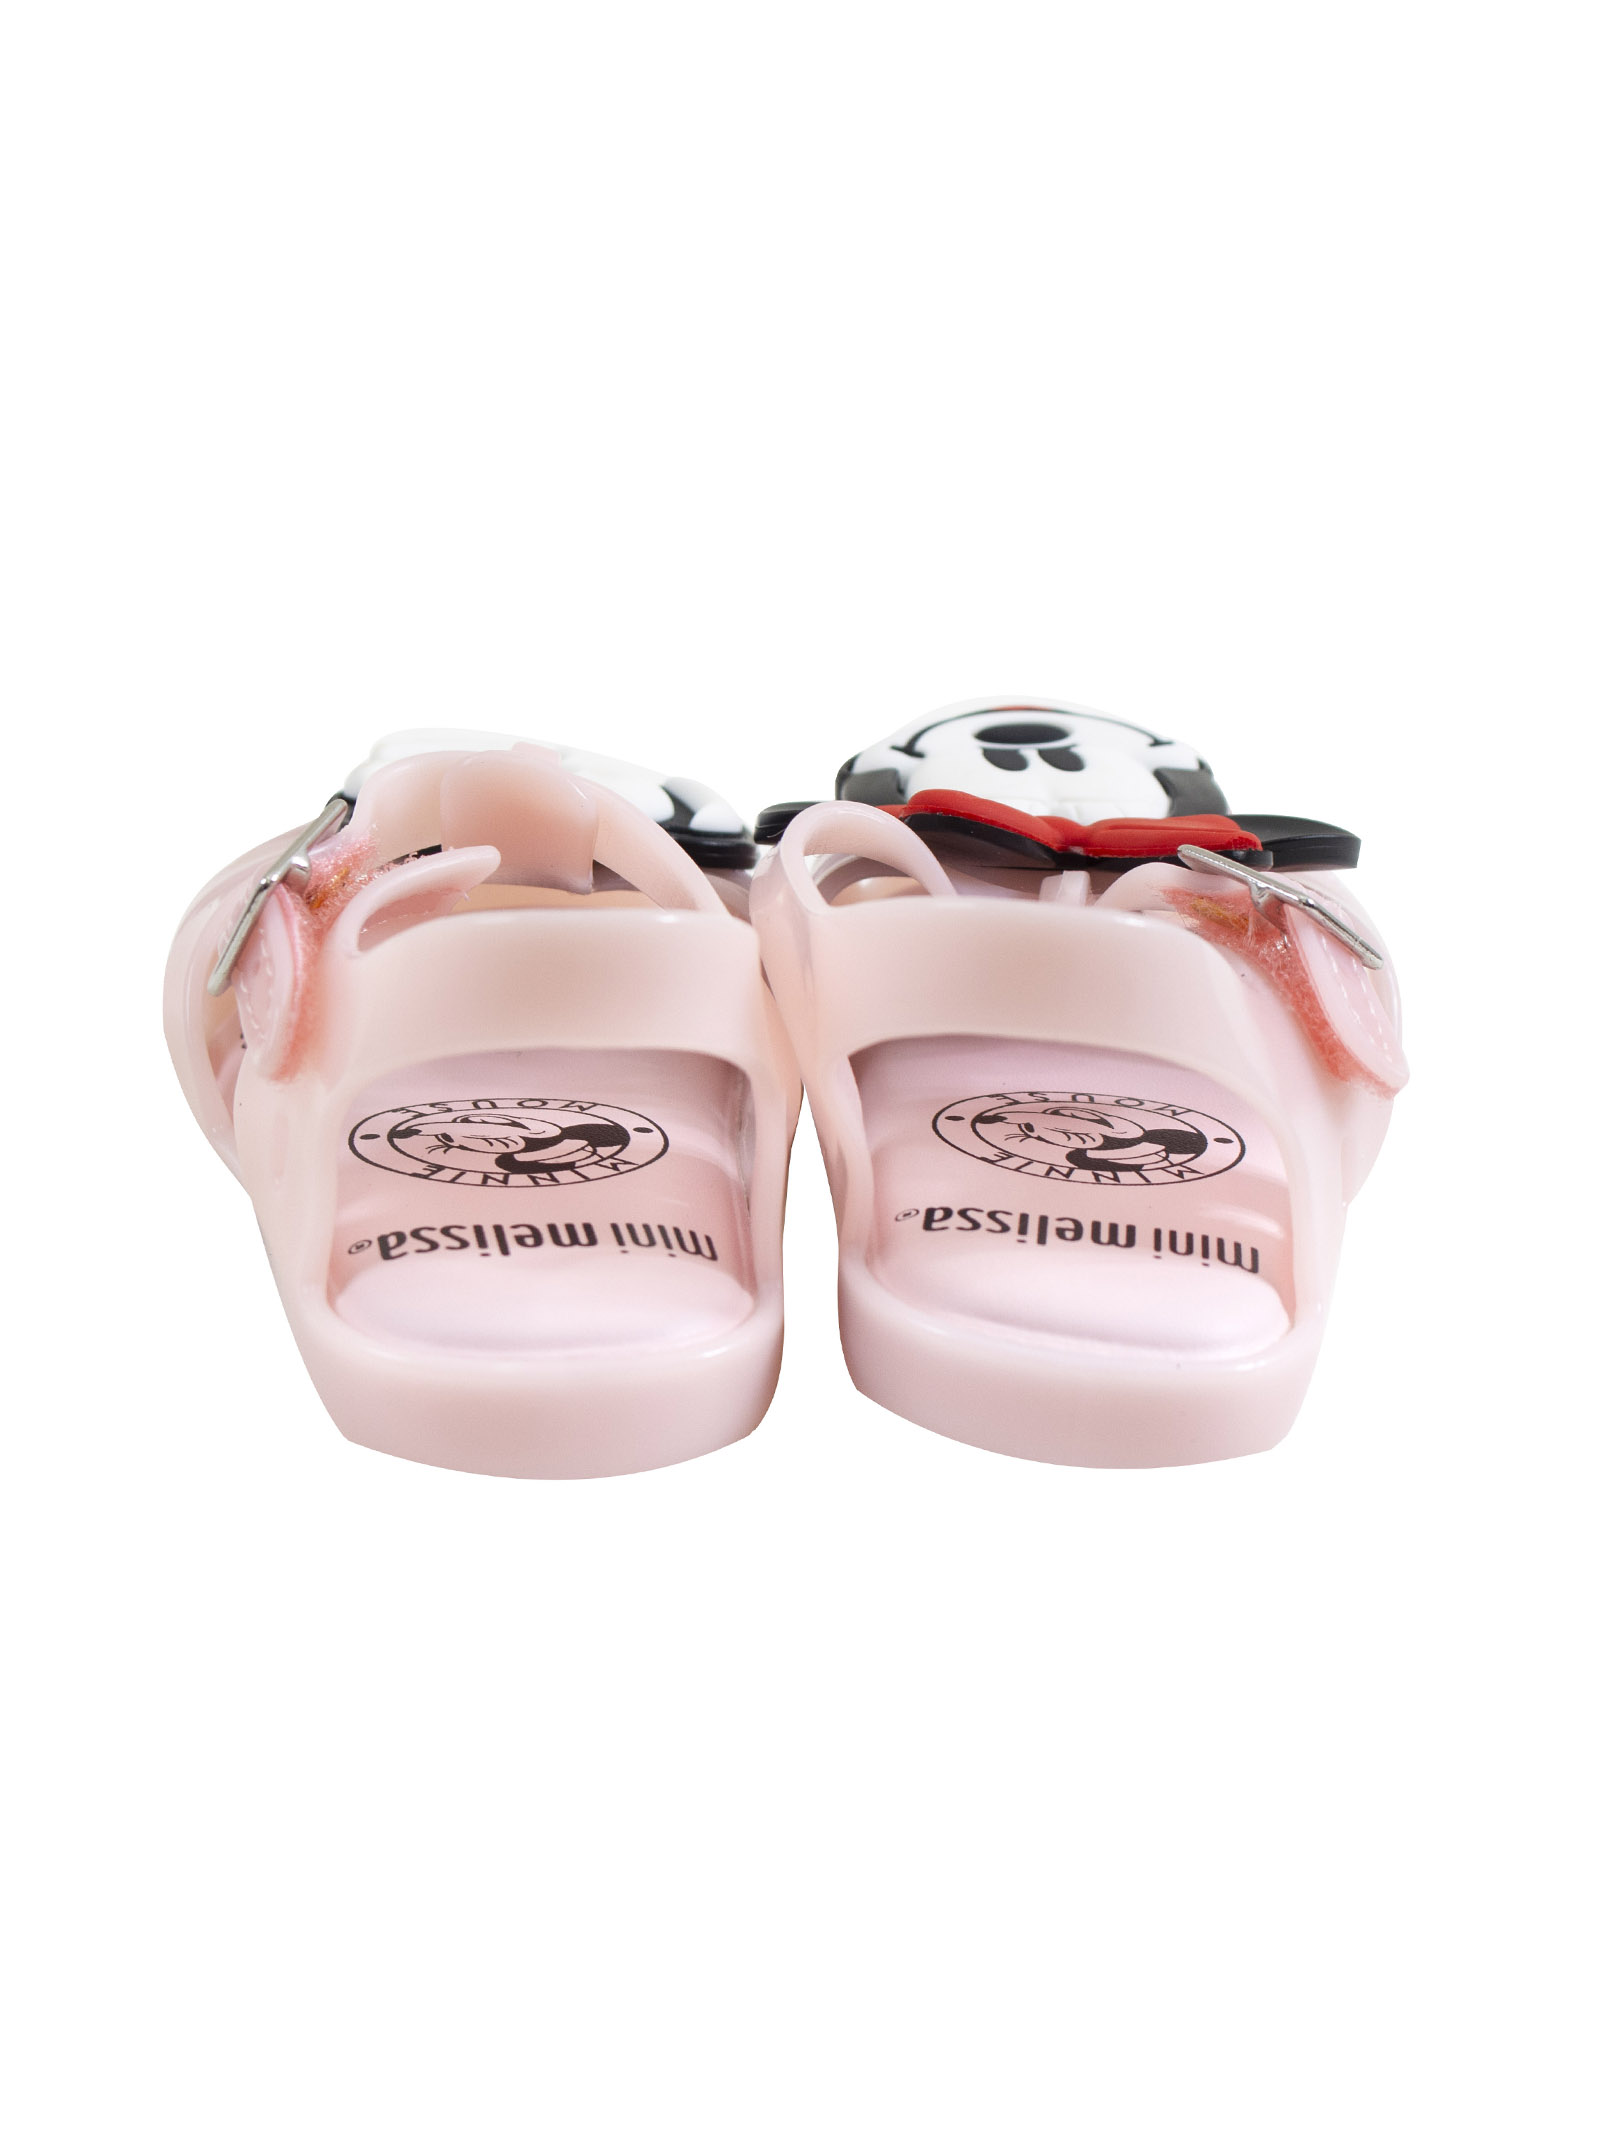 dcea1db43342 HOME   CATEGORIES GIRL   FOOTWEAR   SHOES   MINNIE GIRL SANDALS